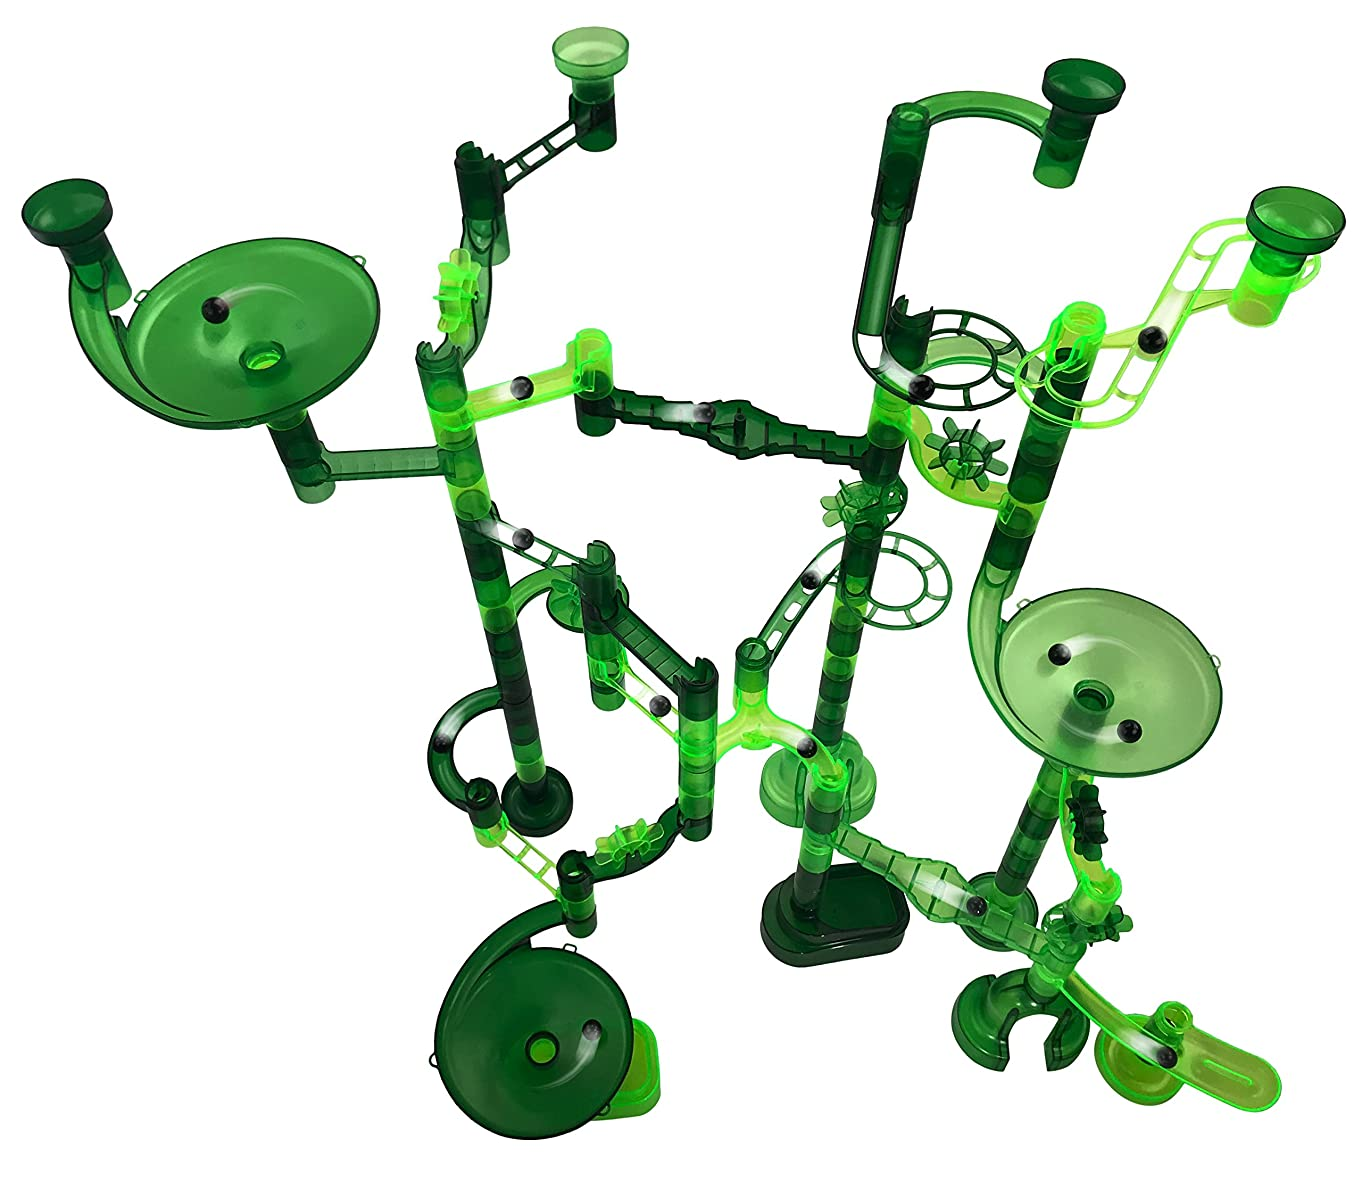 Marble Jungle Marble Run - 100 Pieces: 85 Translucent Marbulous Pieces + 15 Glass Marbles